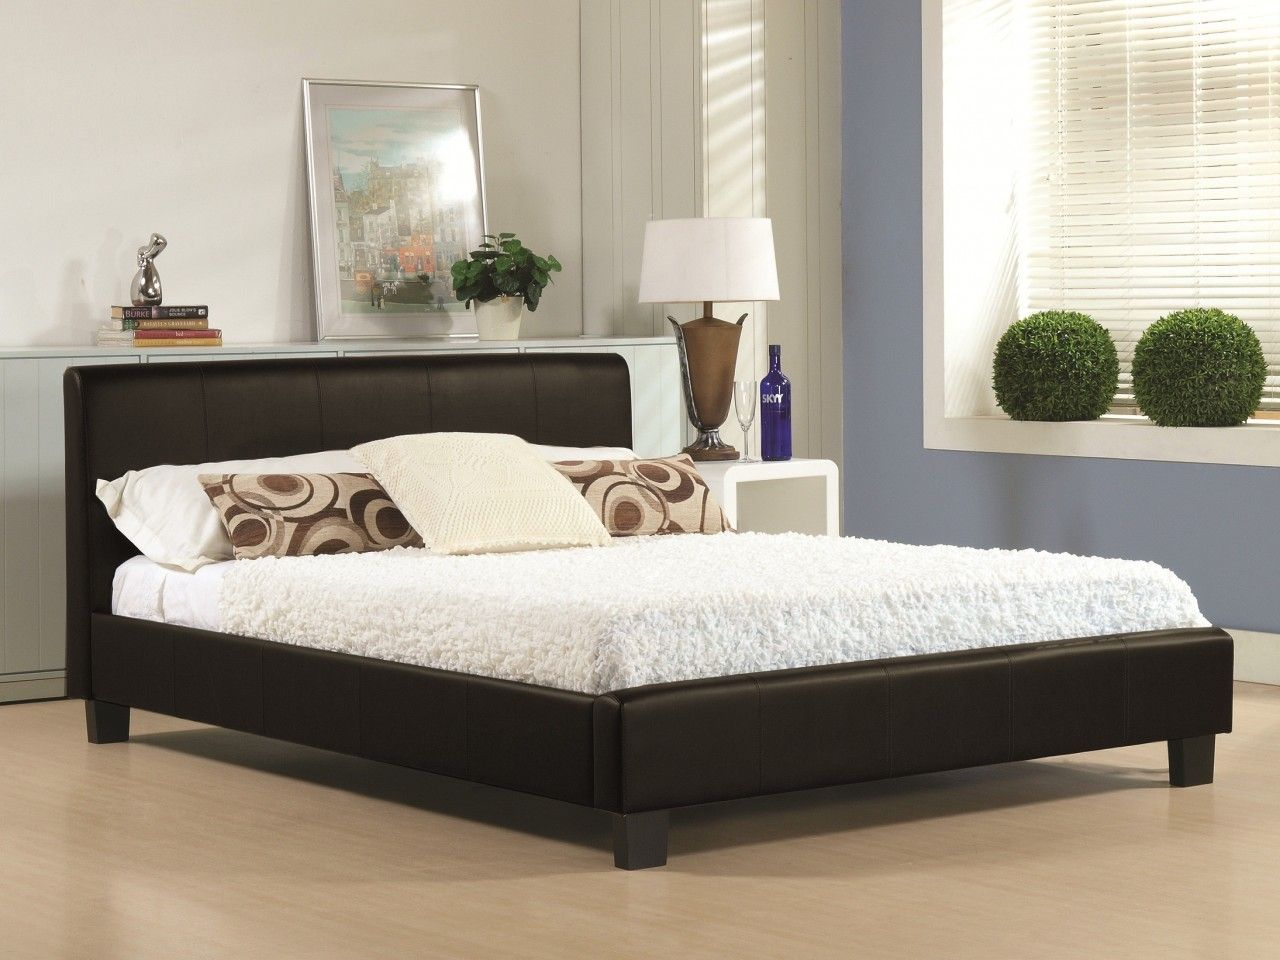 Double bed furniture design - Create Desired Illusion By Suitable Furniture Arrangement Beds Uk